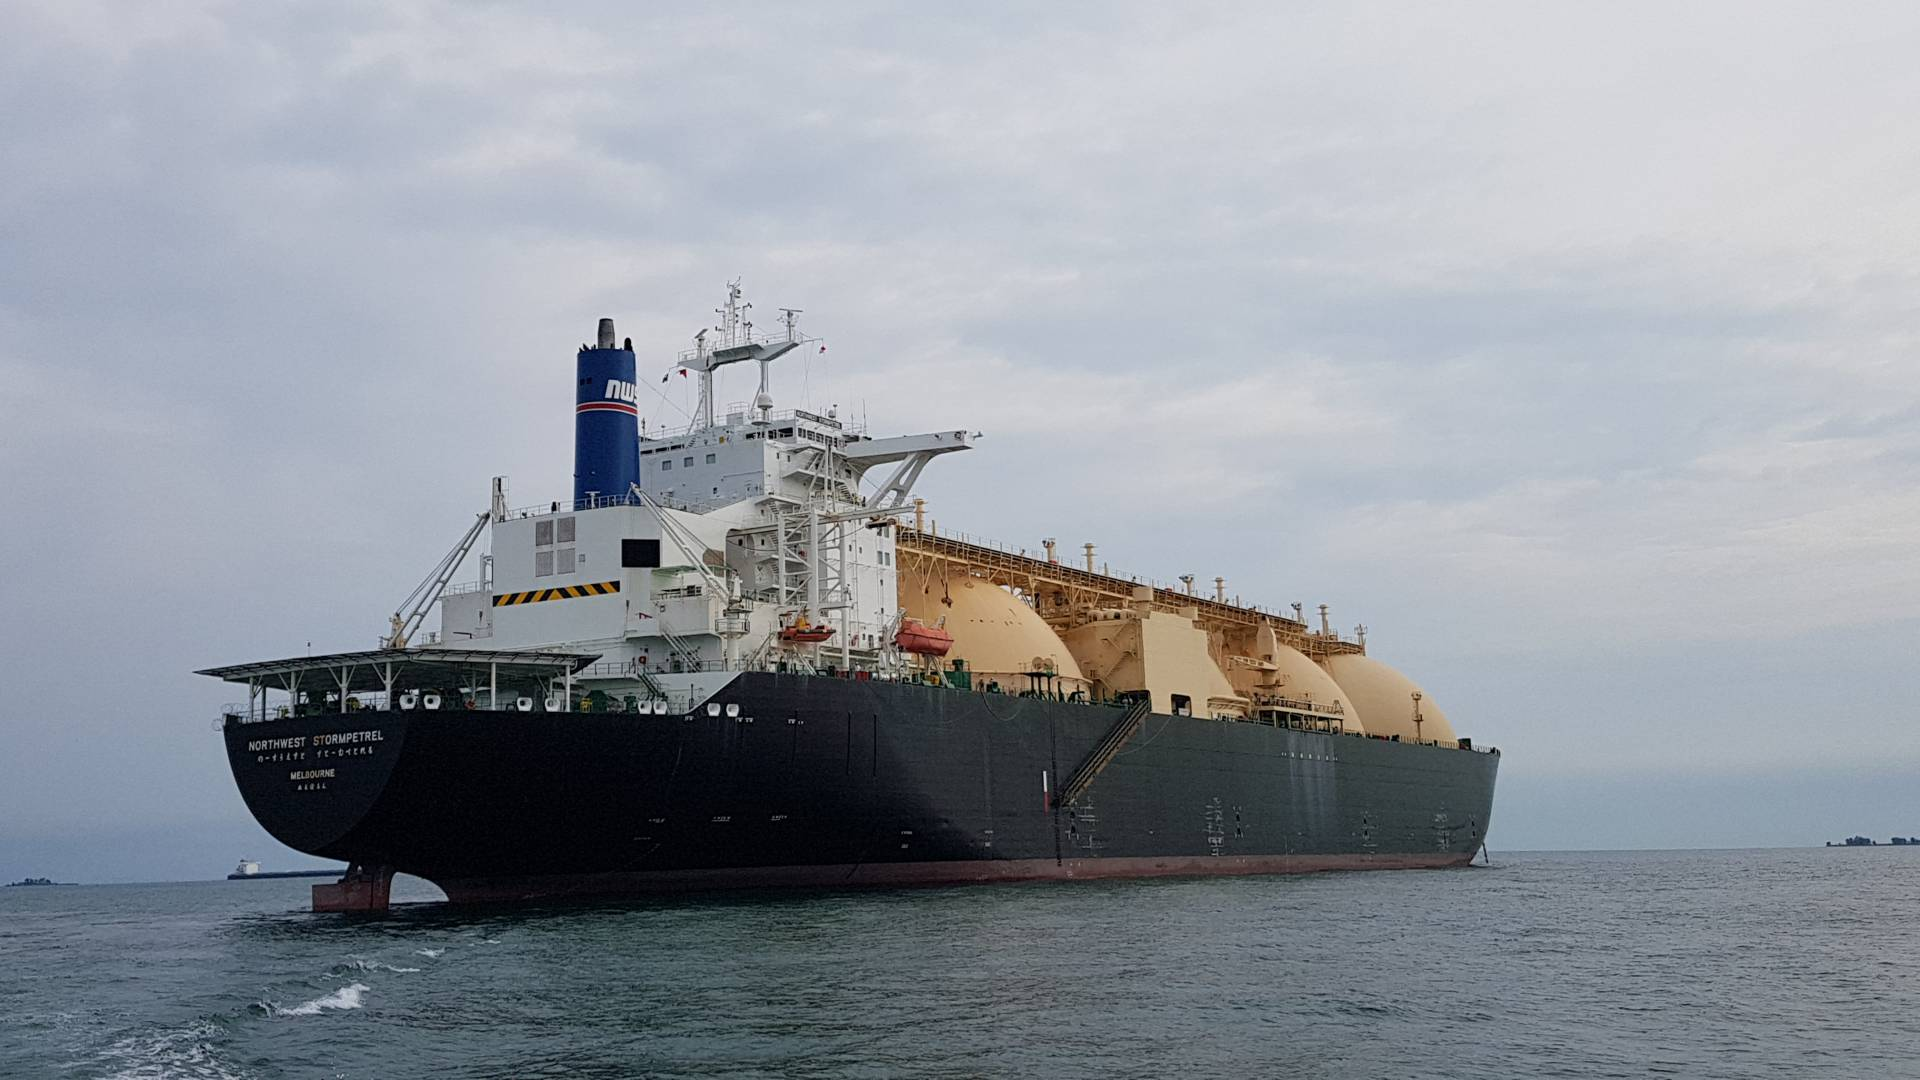 LNG Tanker Northwest Stormpetrel at anchor off Singapore